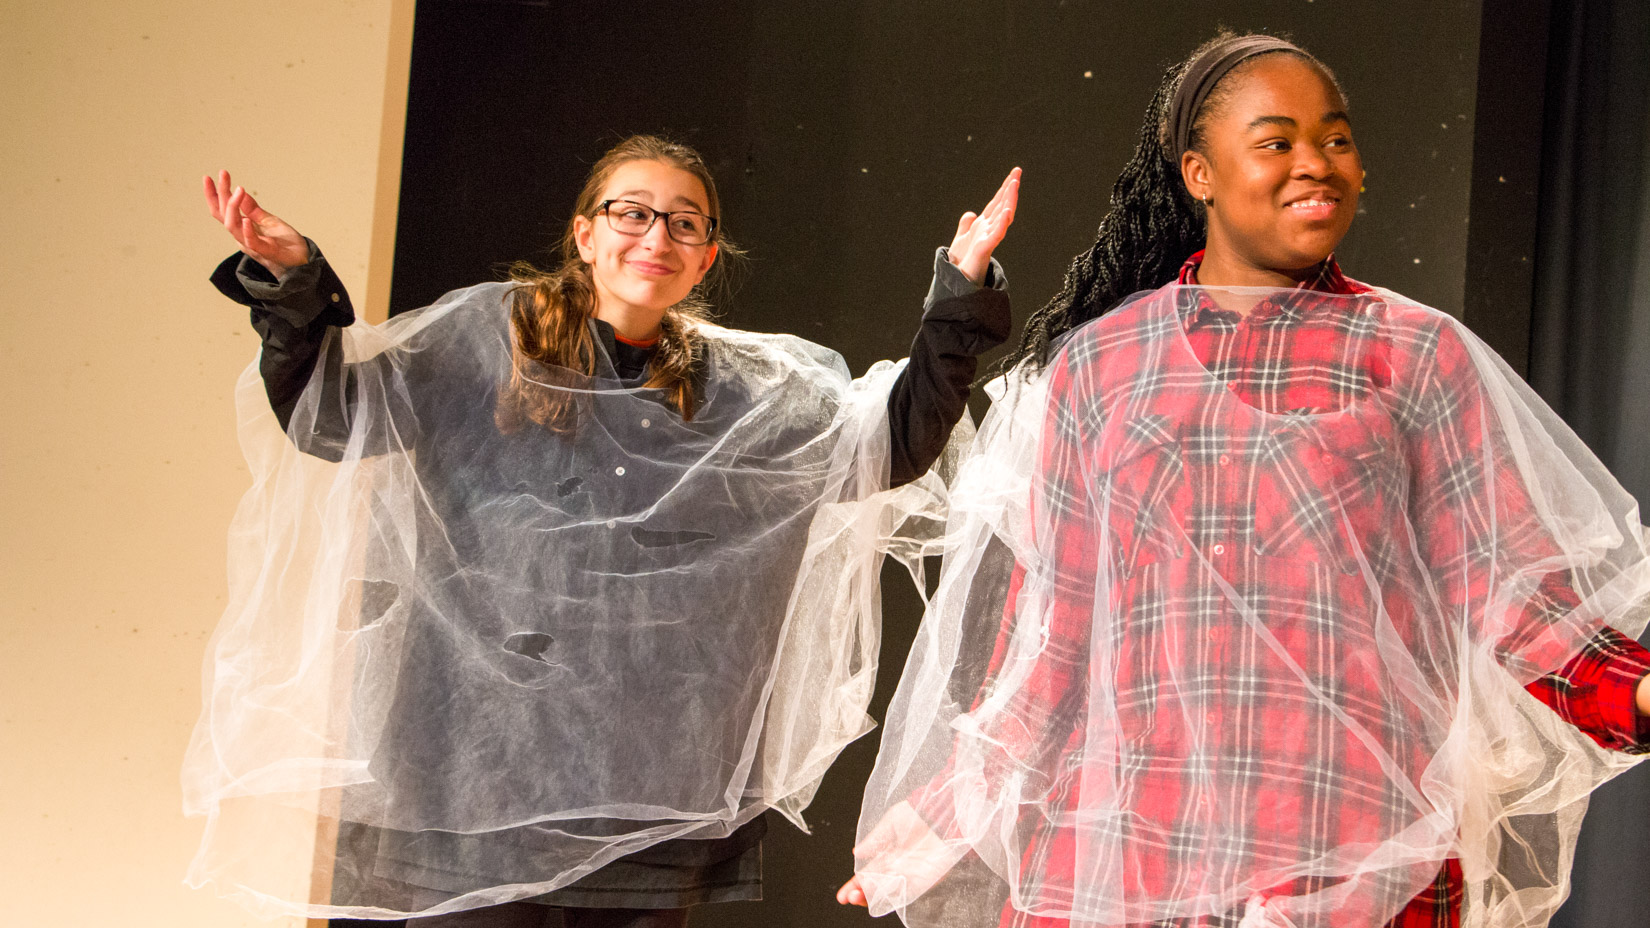 Two students performing a scene together.